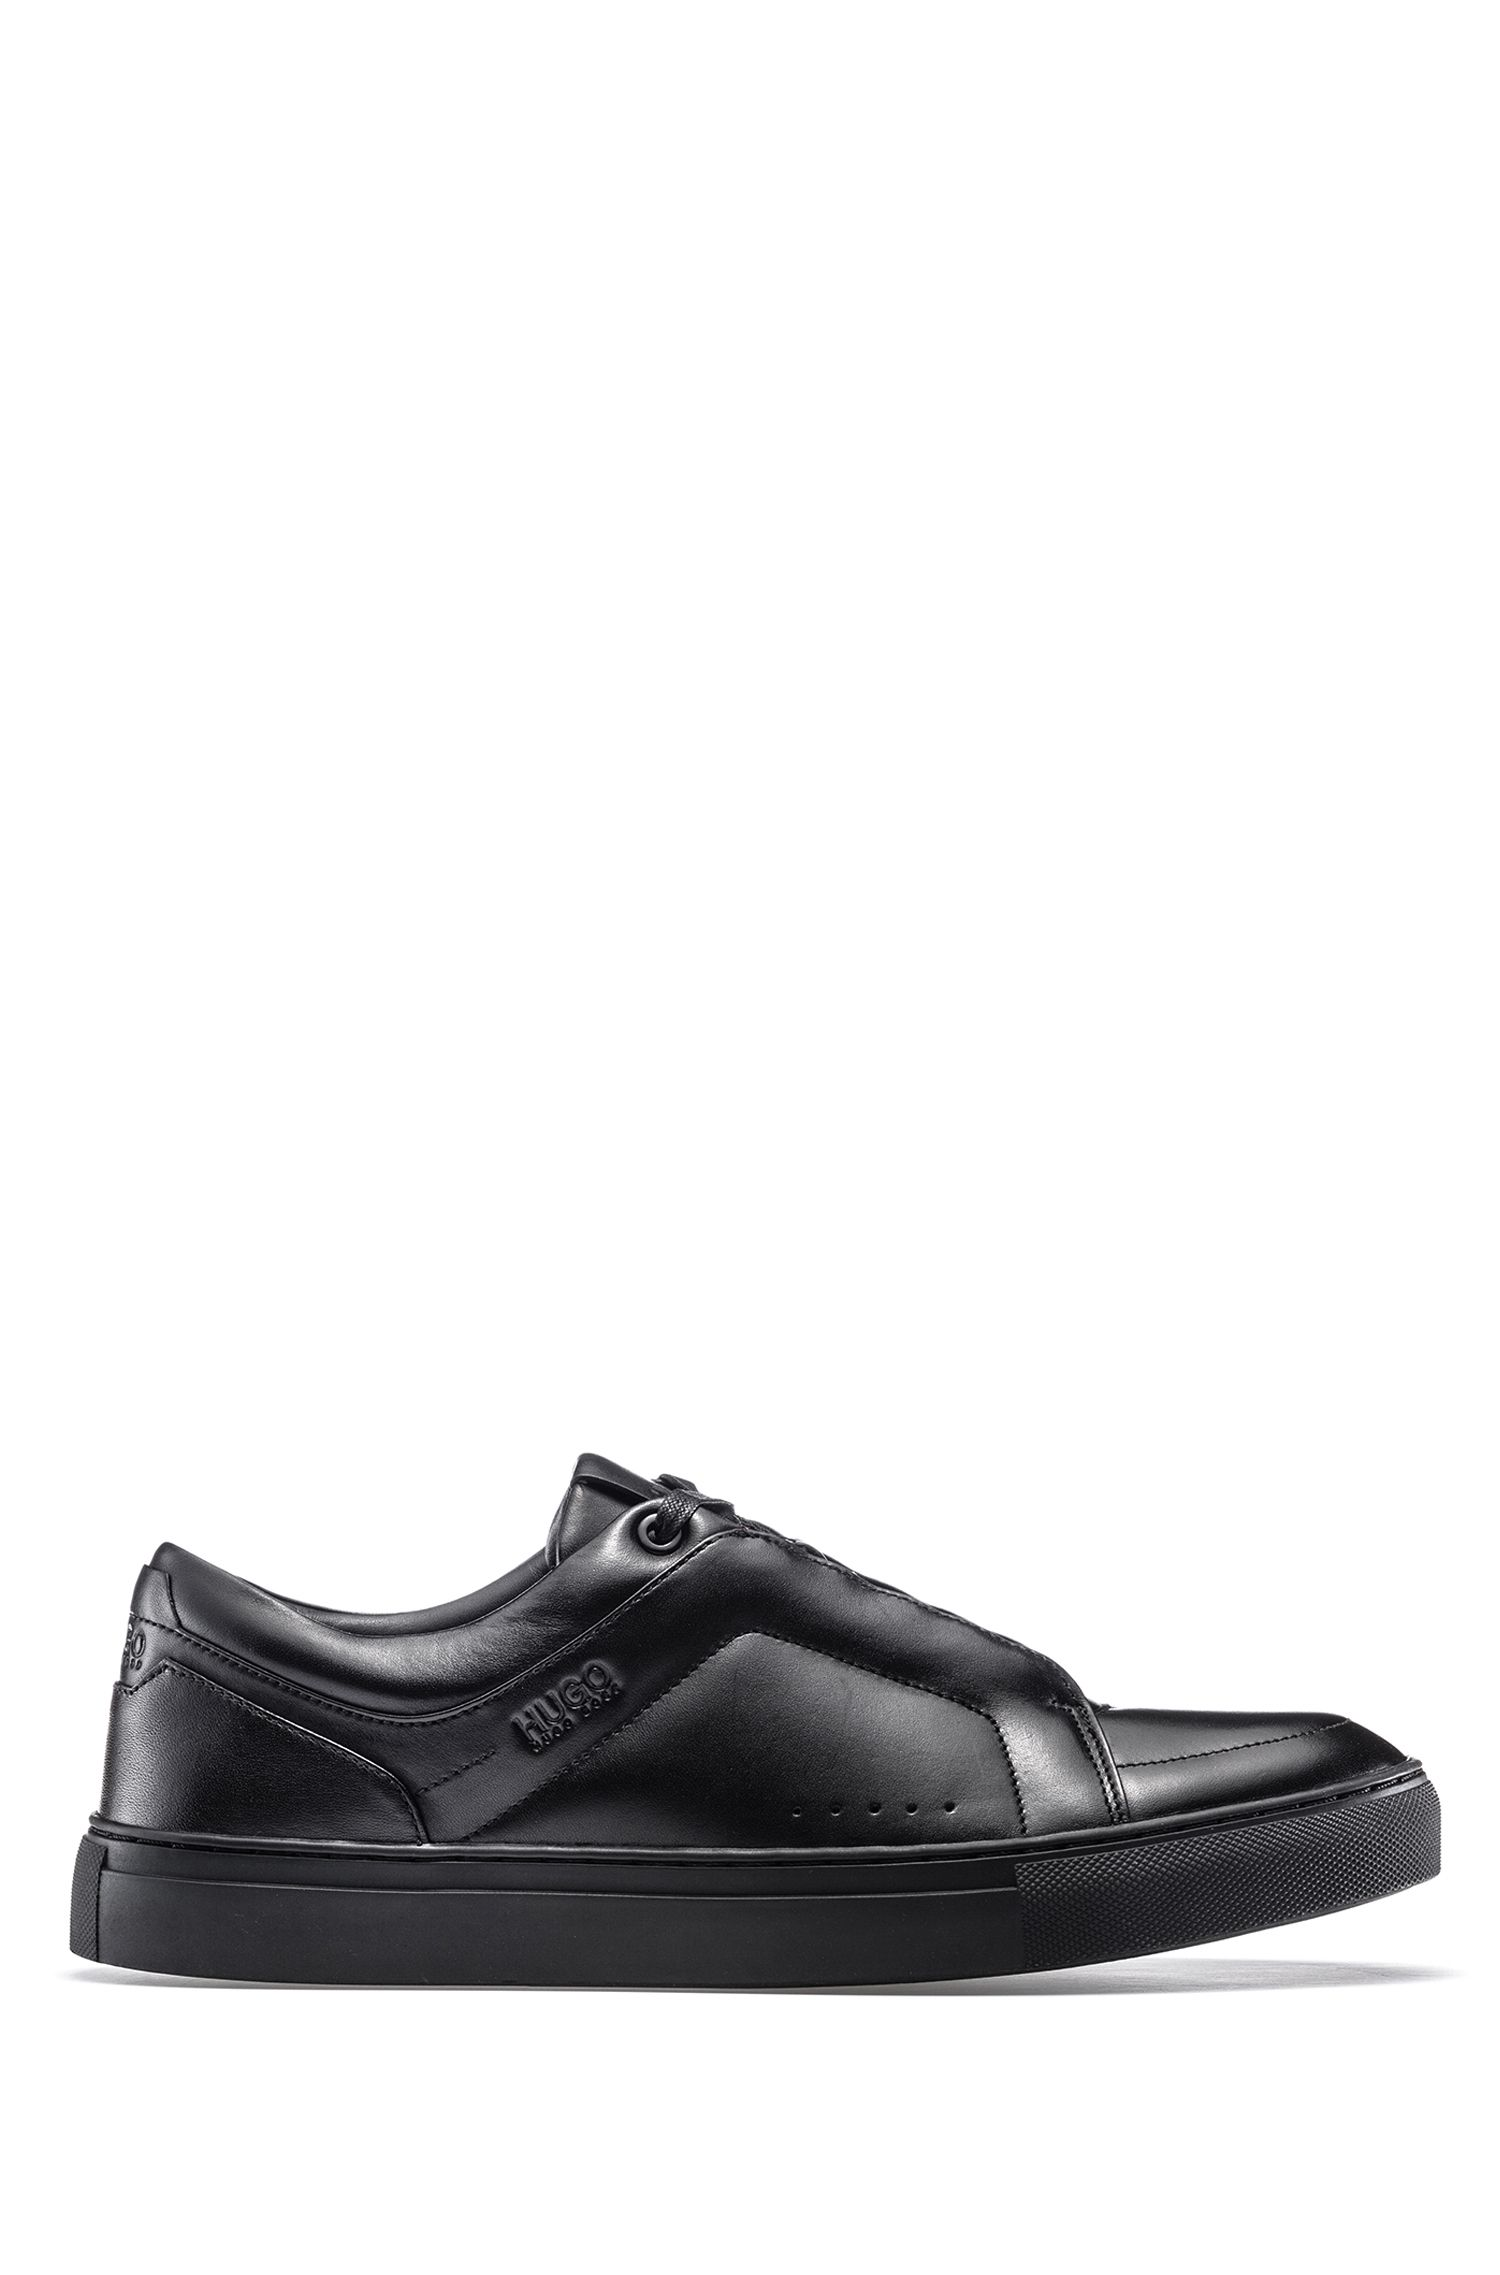 Low-top sneakers in calf leather with lace-up detail, Black